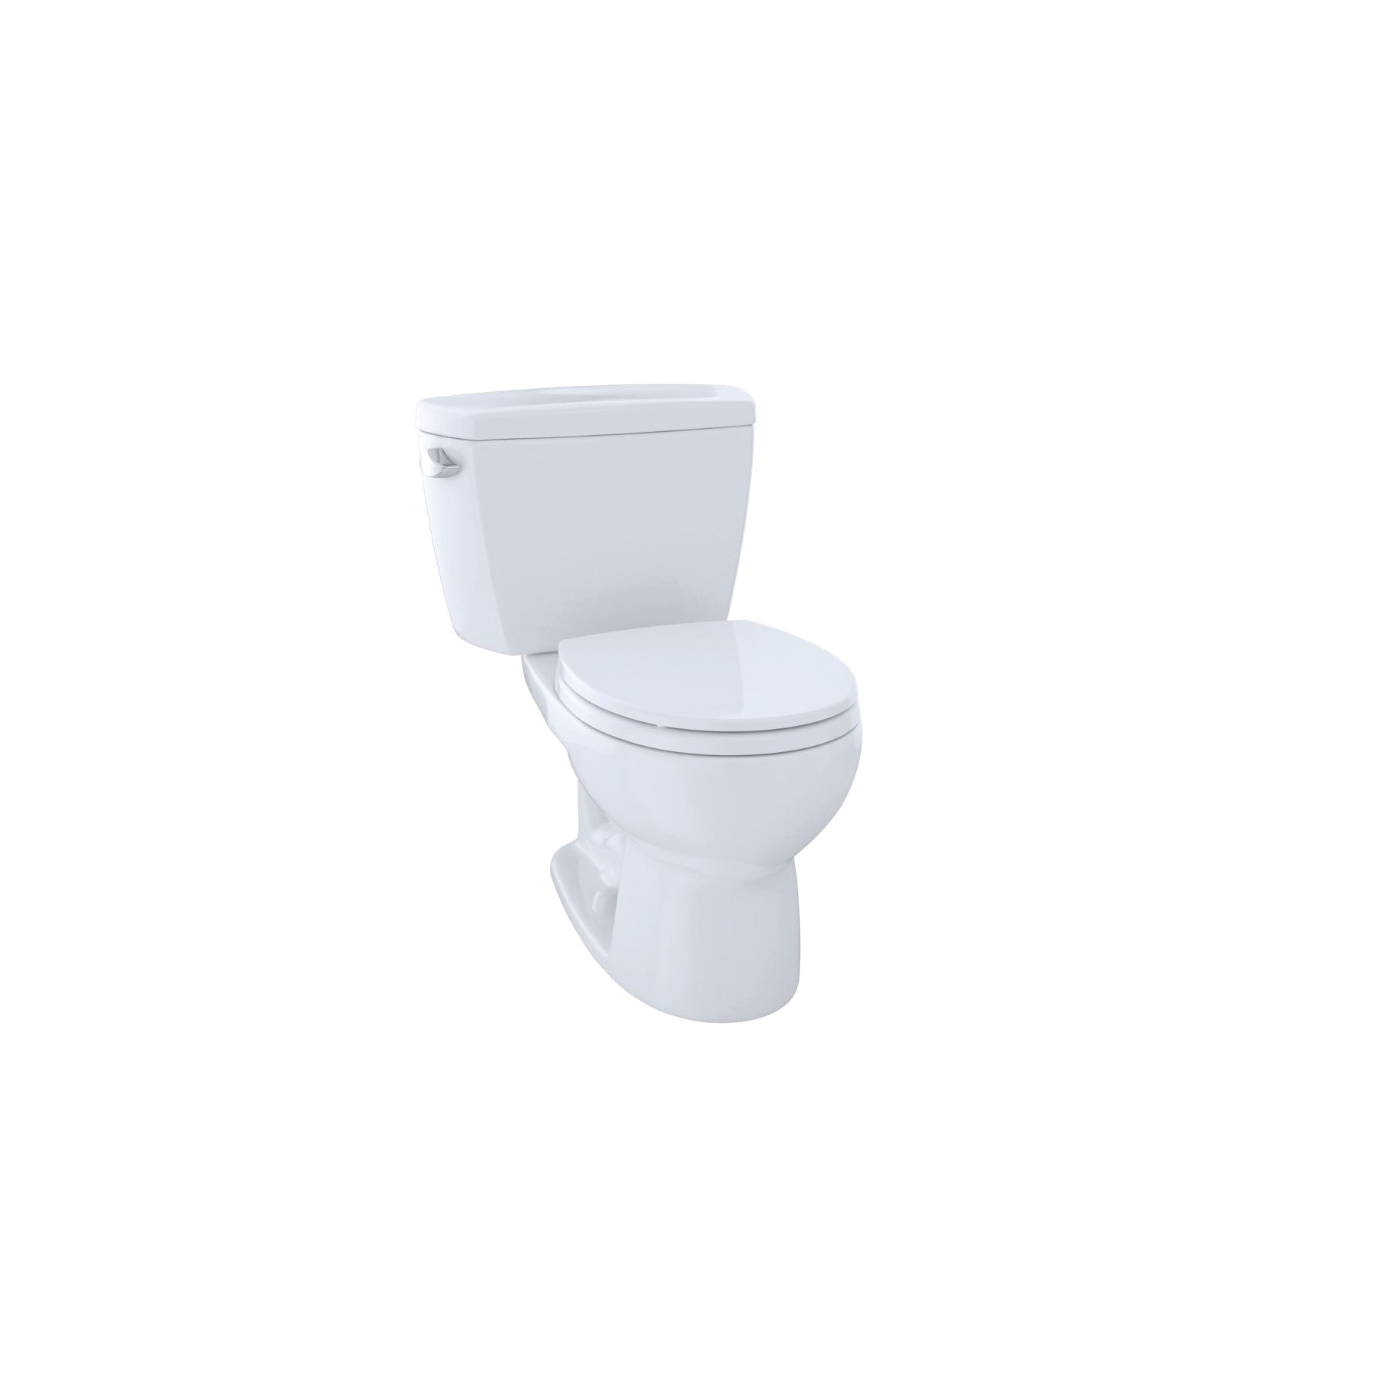 Toto® Eco Drake® CST743E#01 2-Piece Universal Height Close Coupled Toilet With Left-Hand Chrome Trip Lever, Round Front Bowl, 15-5/8 in H Rim, 1.28 gpf, Cotton White, Import